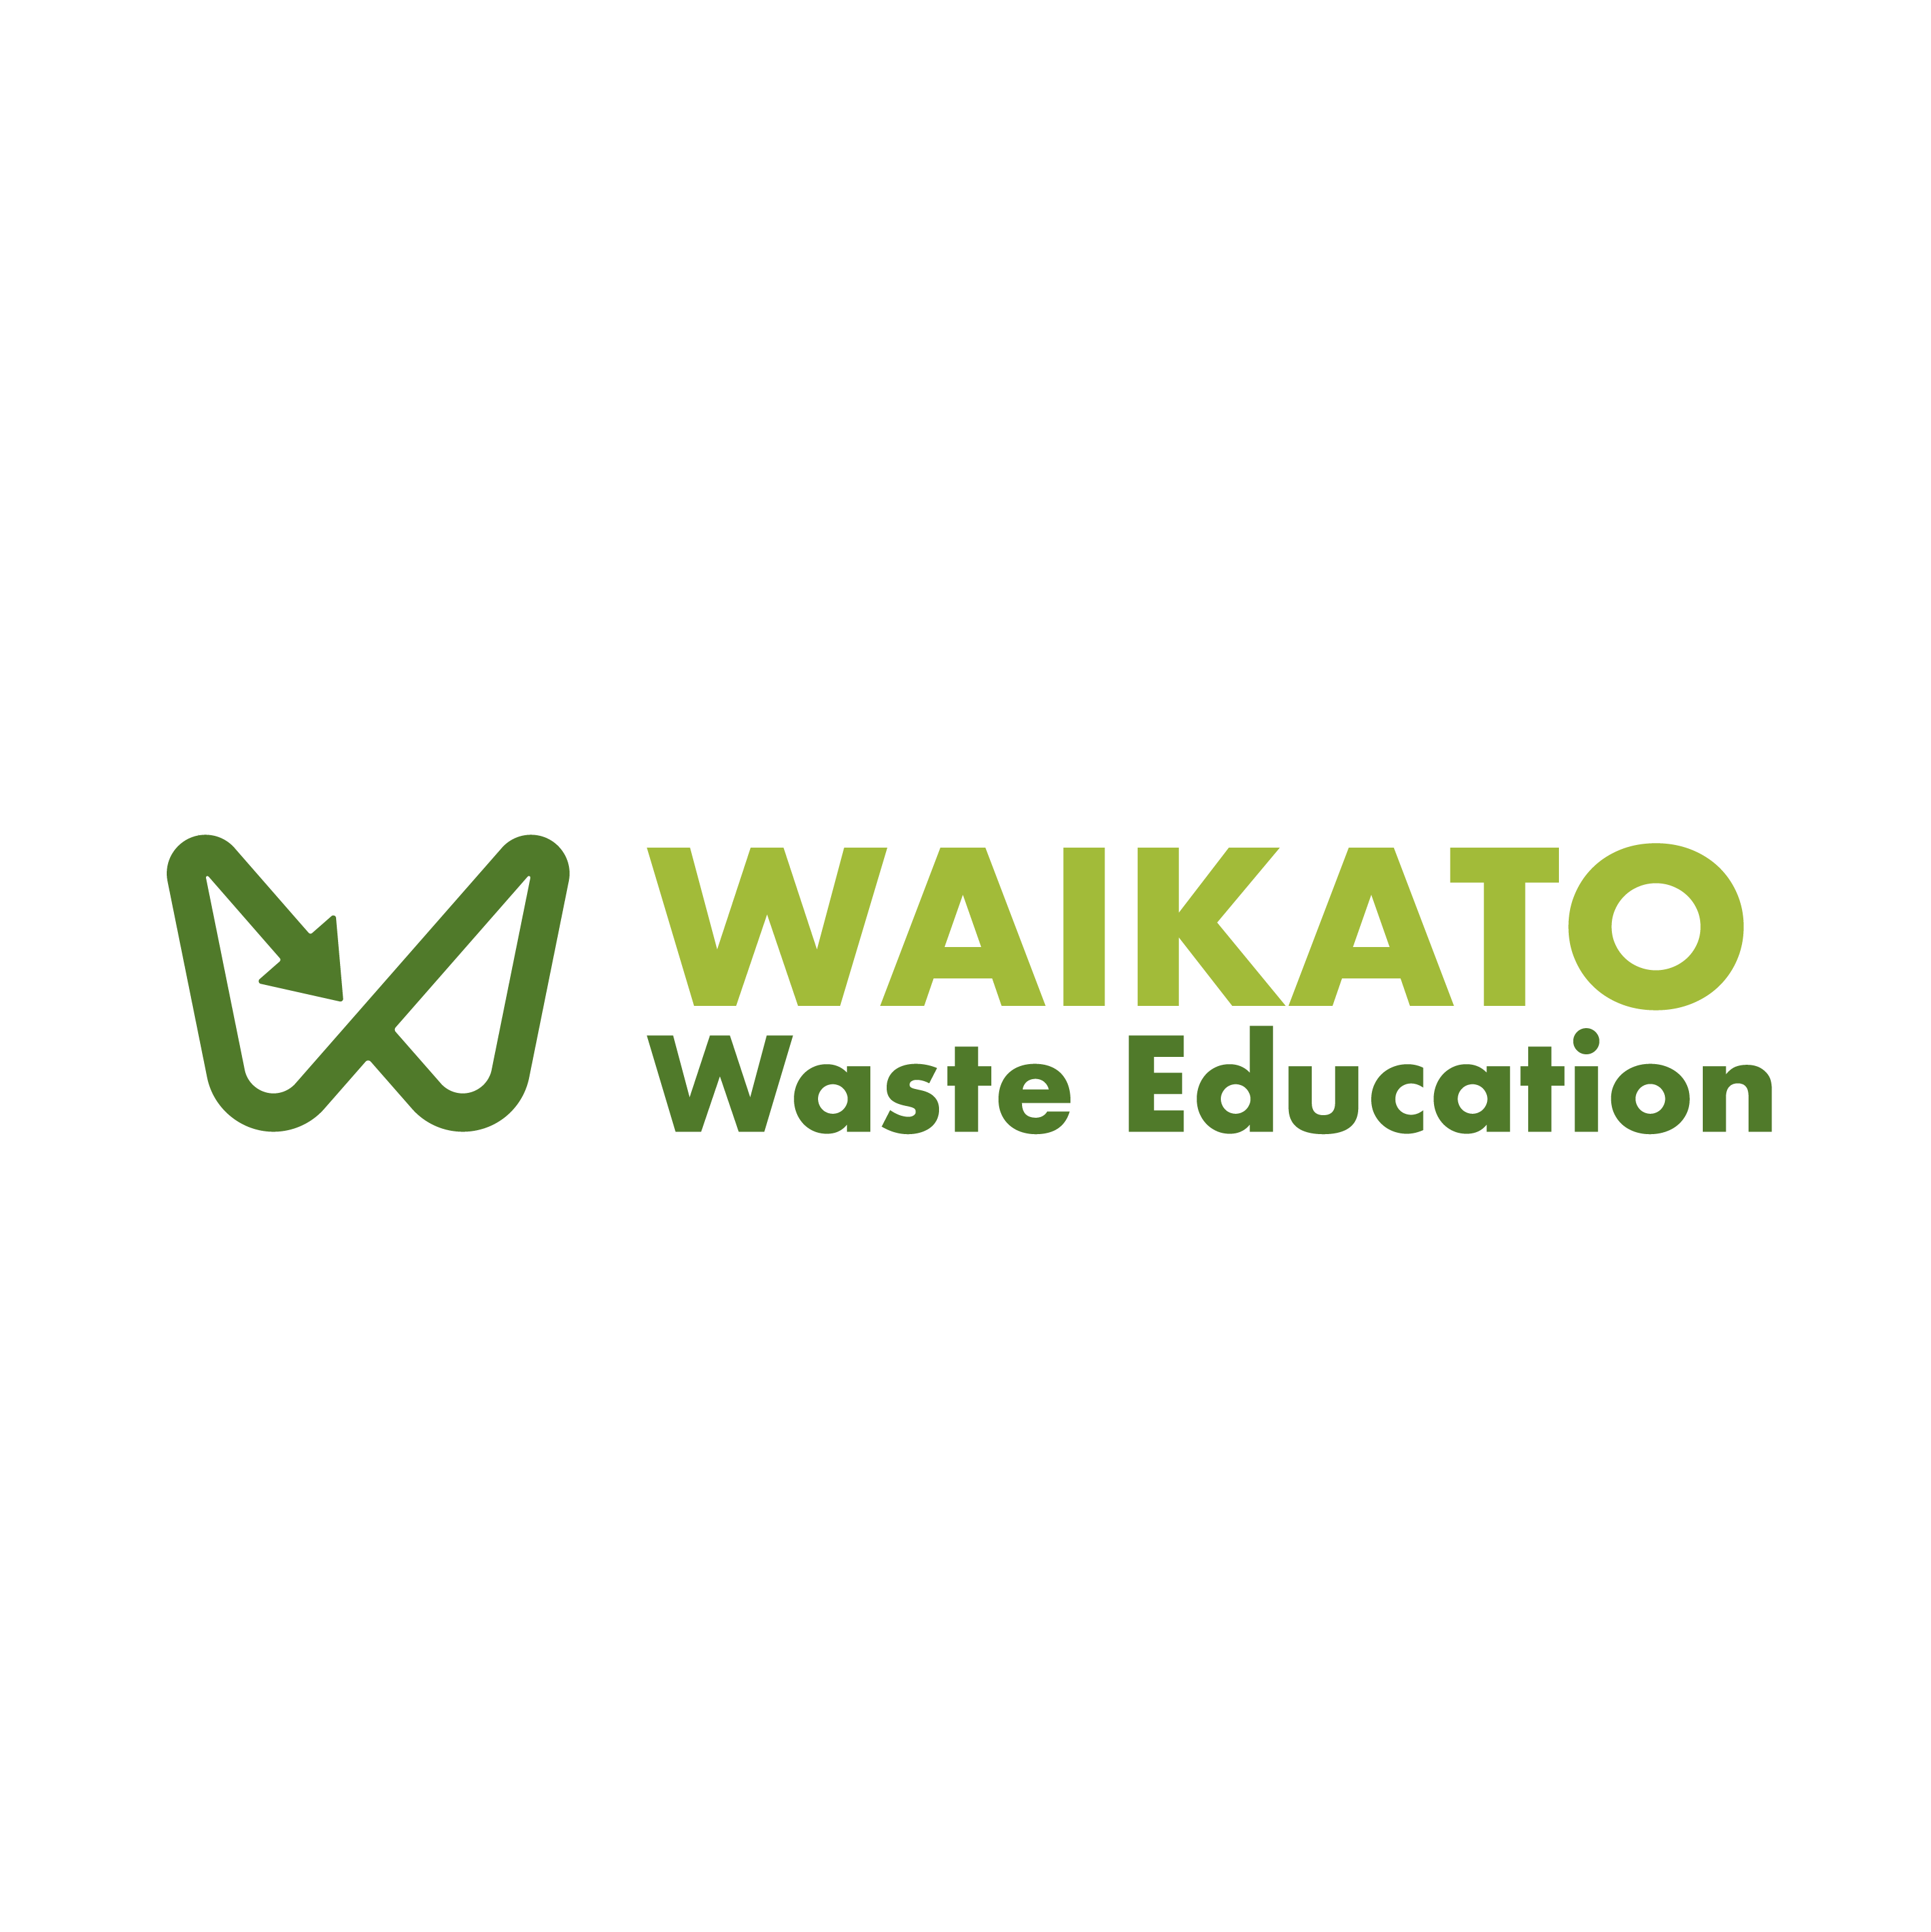 WAIKATO WASTE EDUCATION